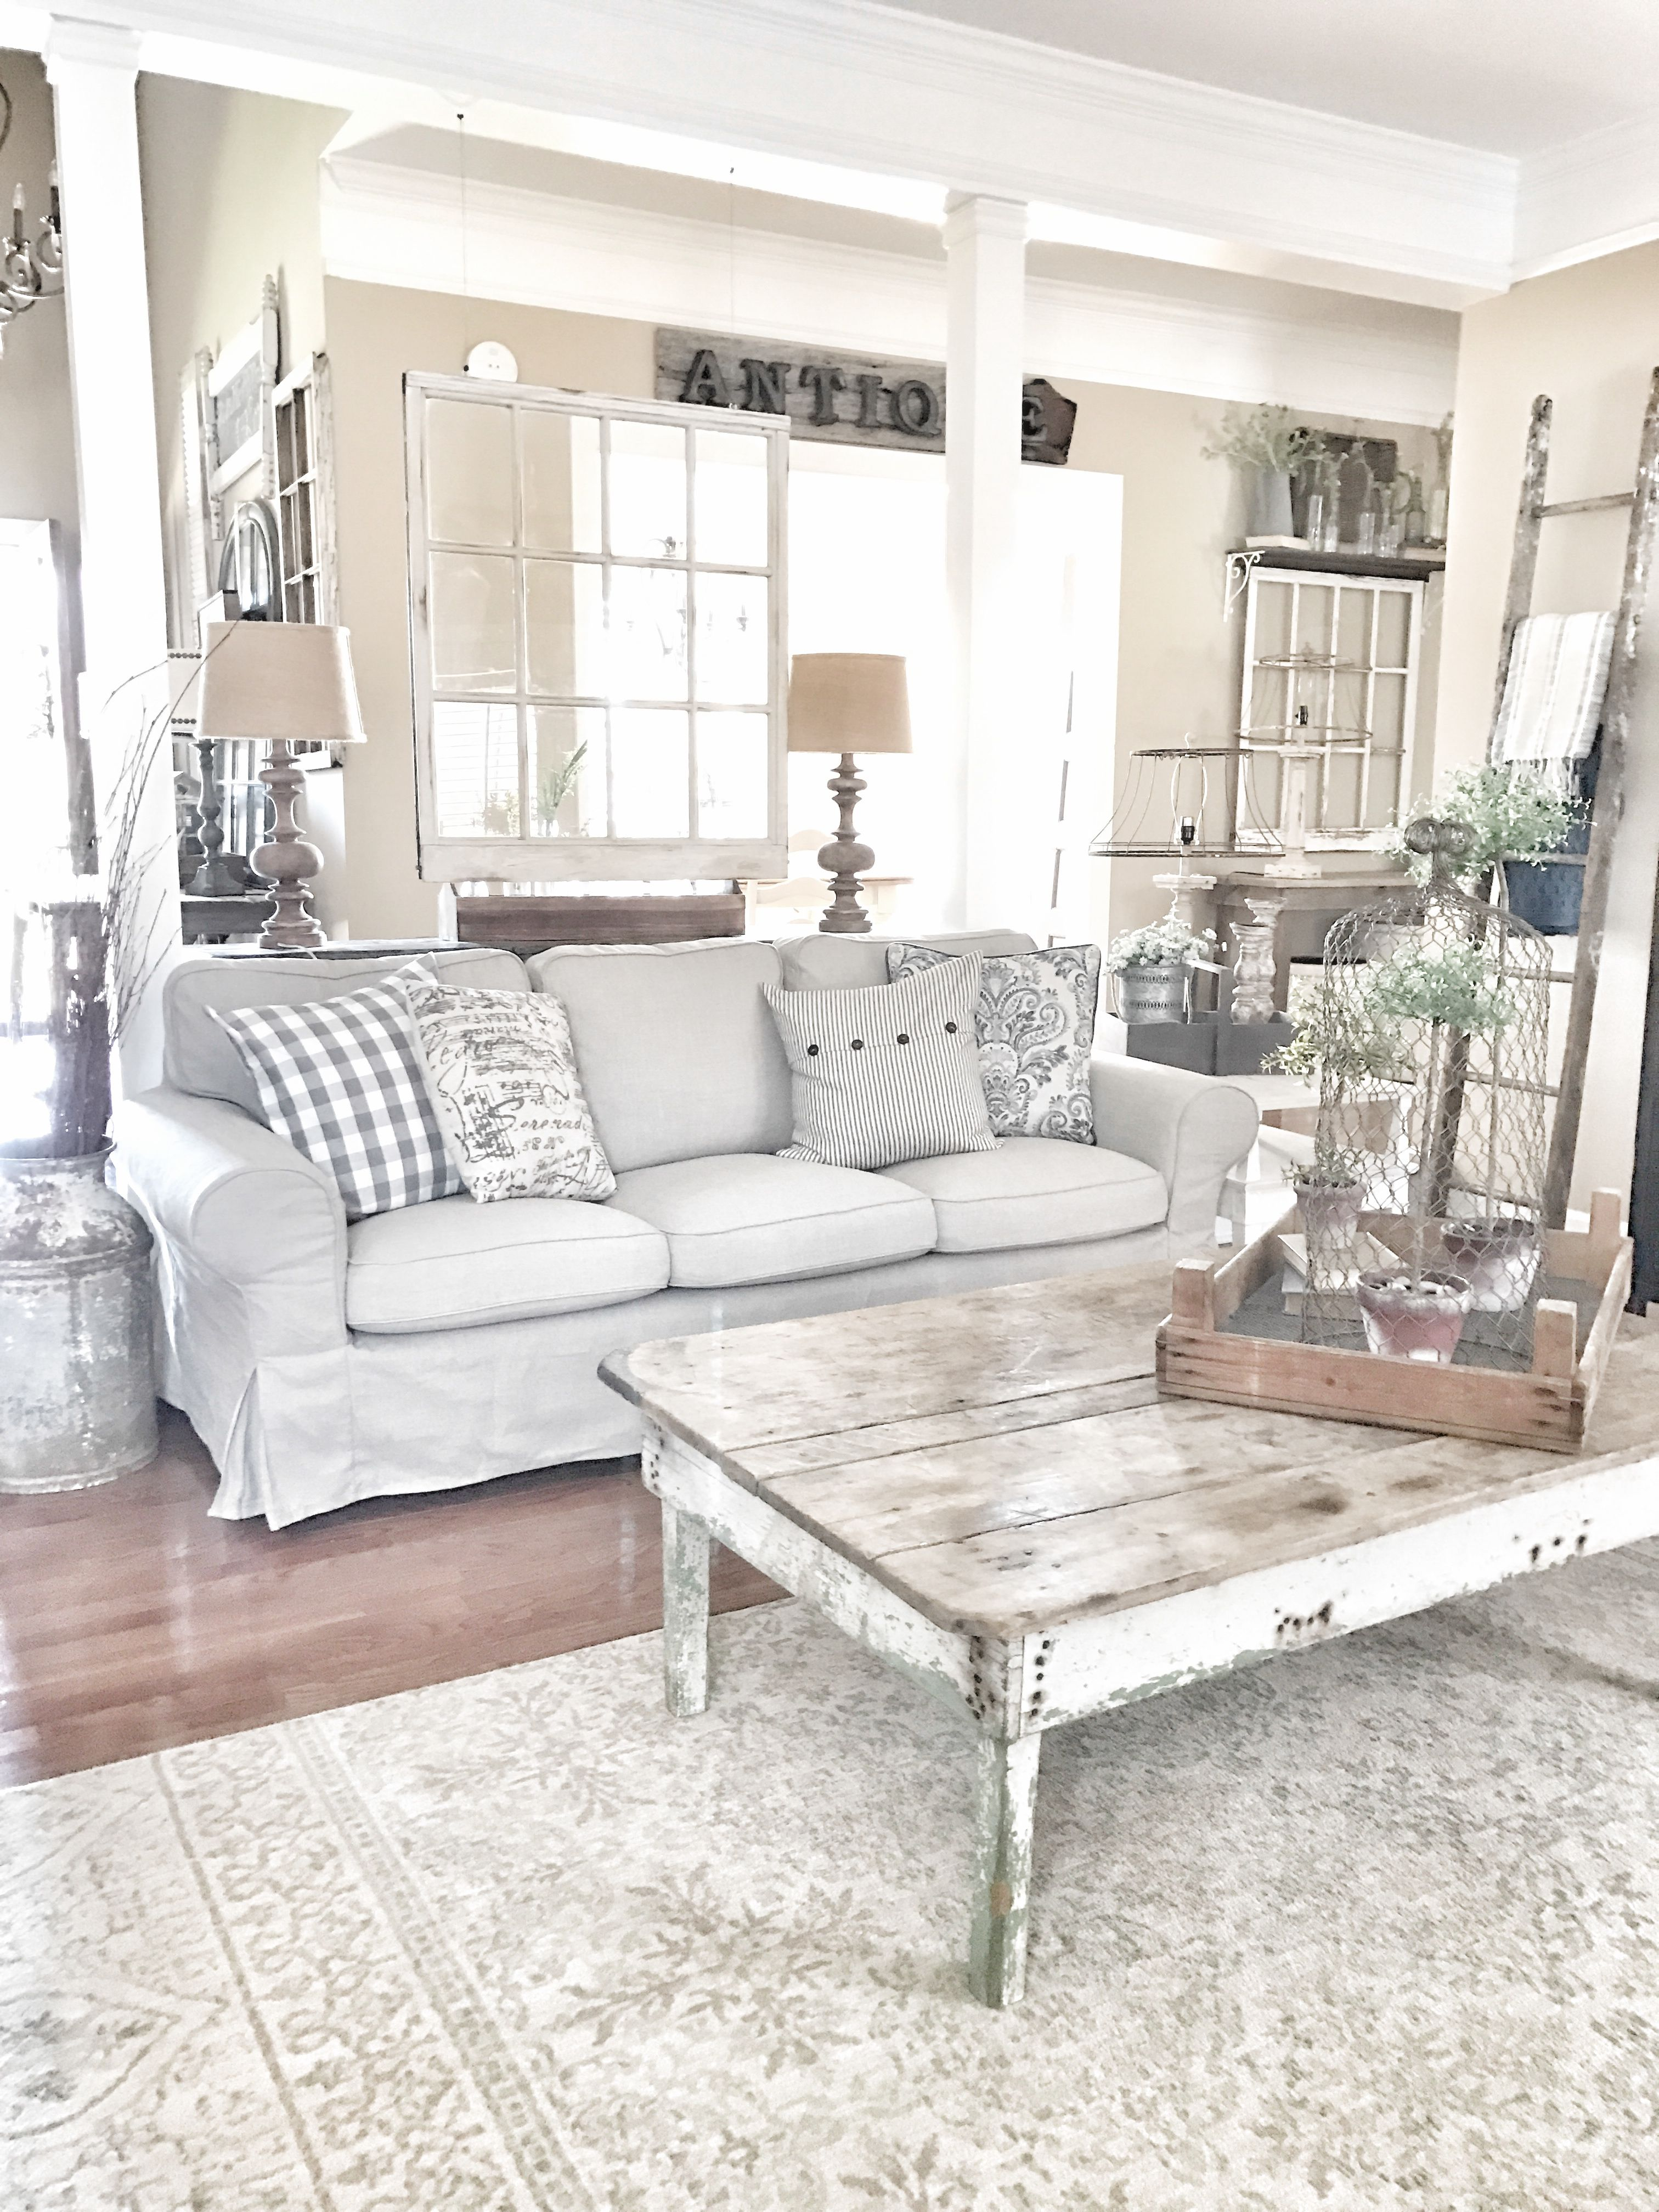 27 Breathtaking Rustic Chic Living Rooms That You Have To See Rustic Chic Living Roo Rustic Chic Living Room Living Room Decor Rustic Shabby Chic Living Room